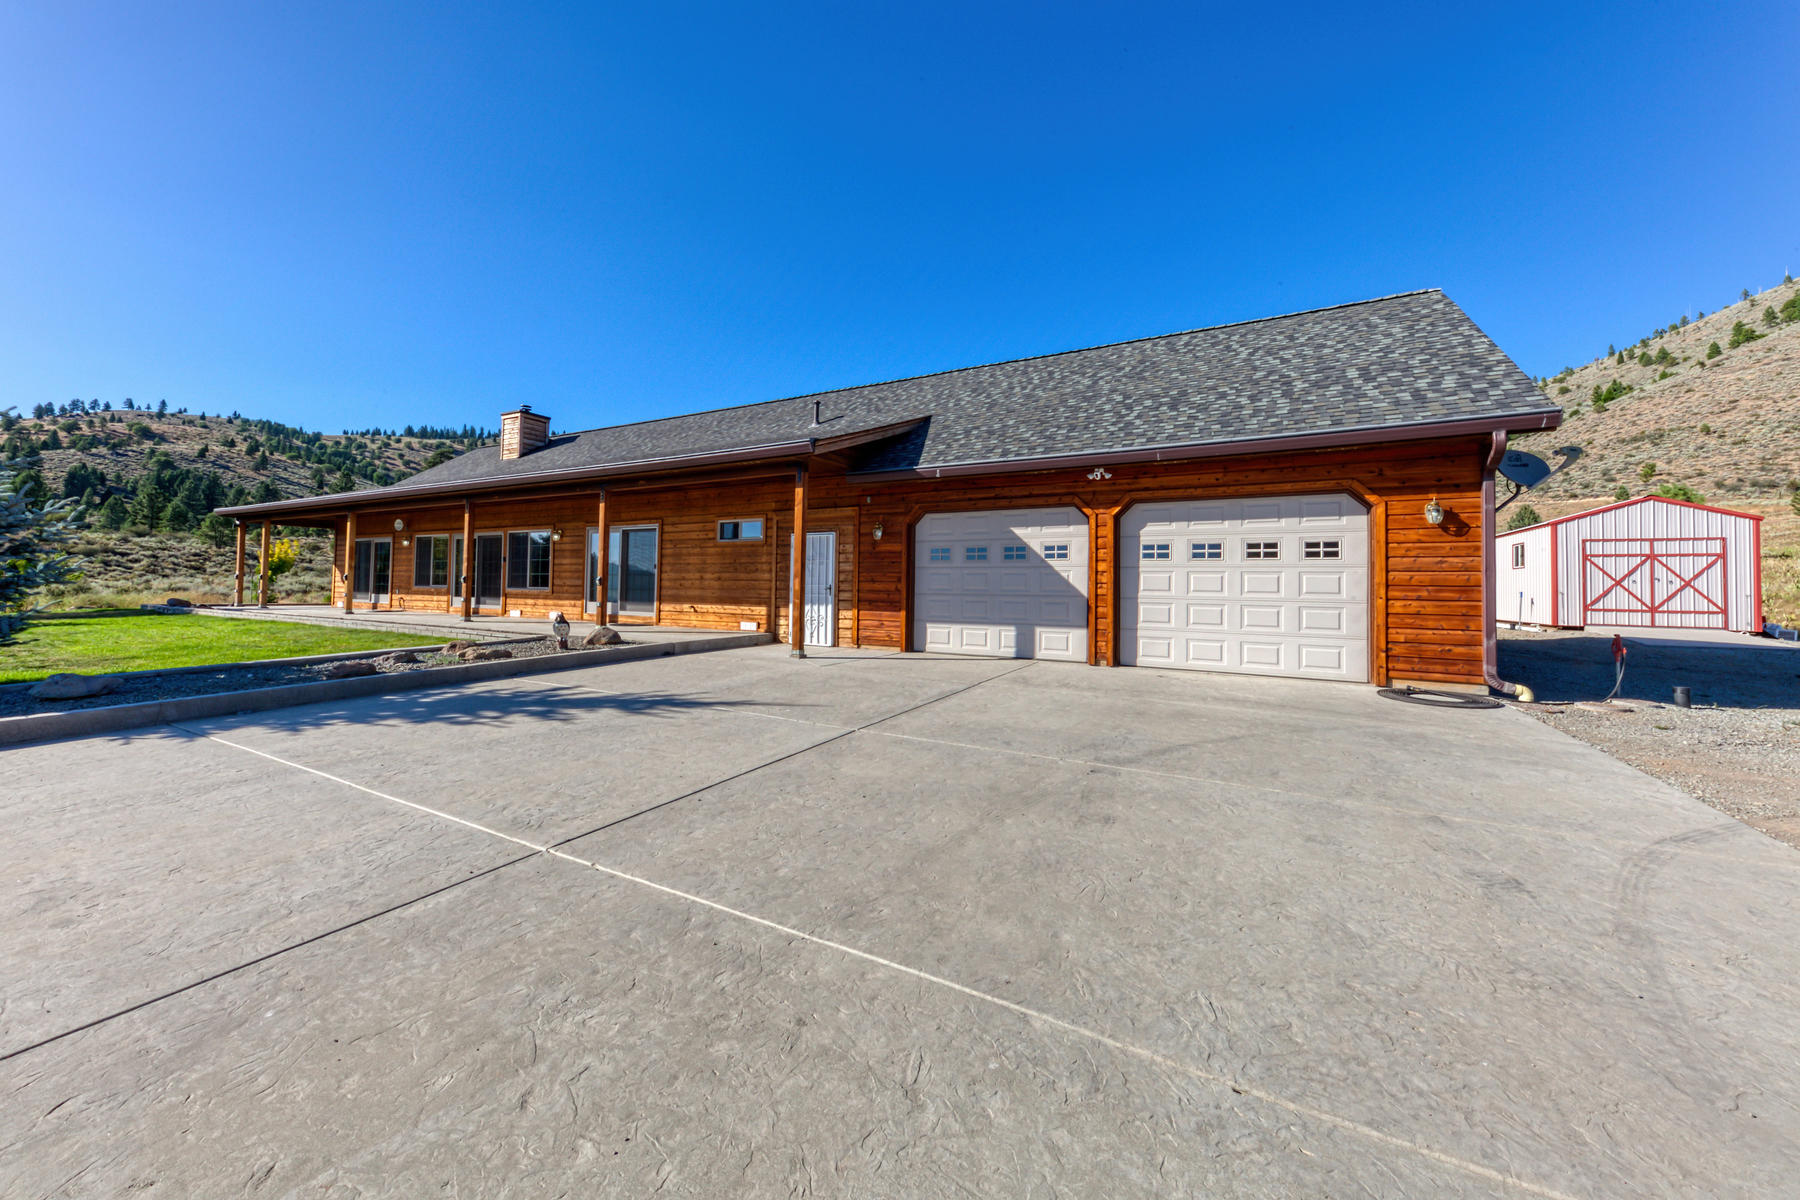 Additional photo for property listing at 79905 Panoramic Road, Portola, CA 96122 79905 Panoramic Road Beckwourth, California 96122 United States